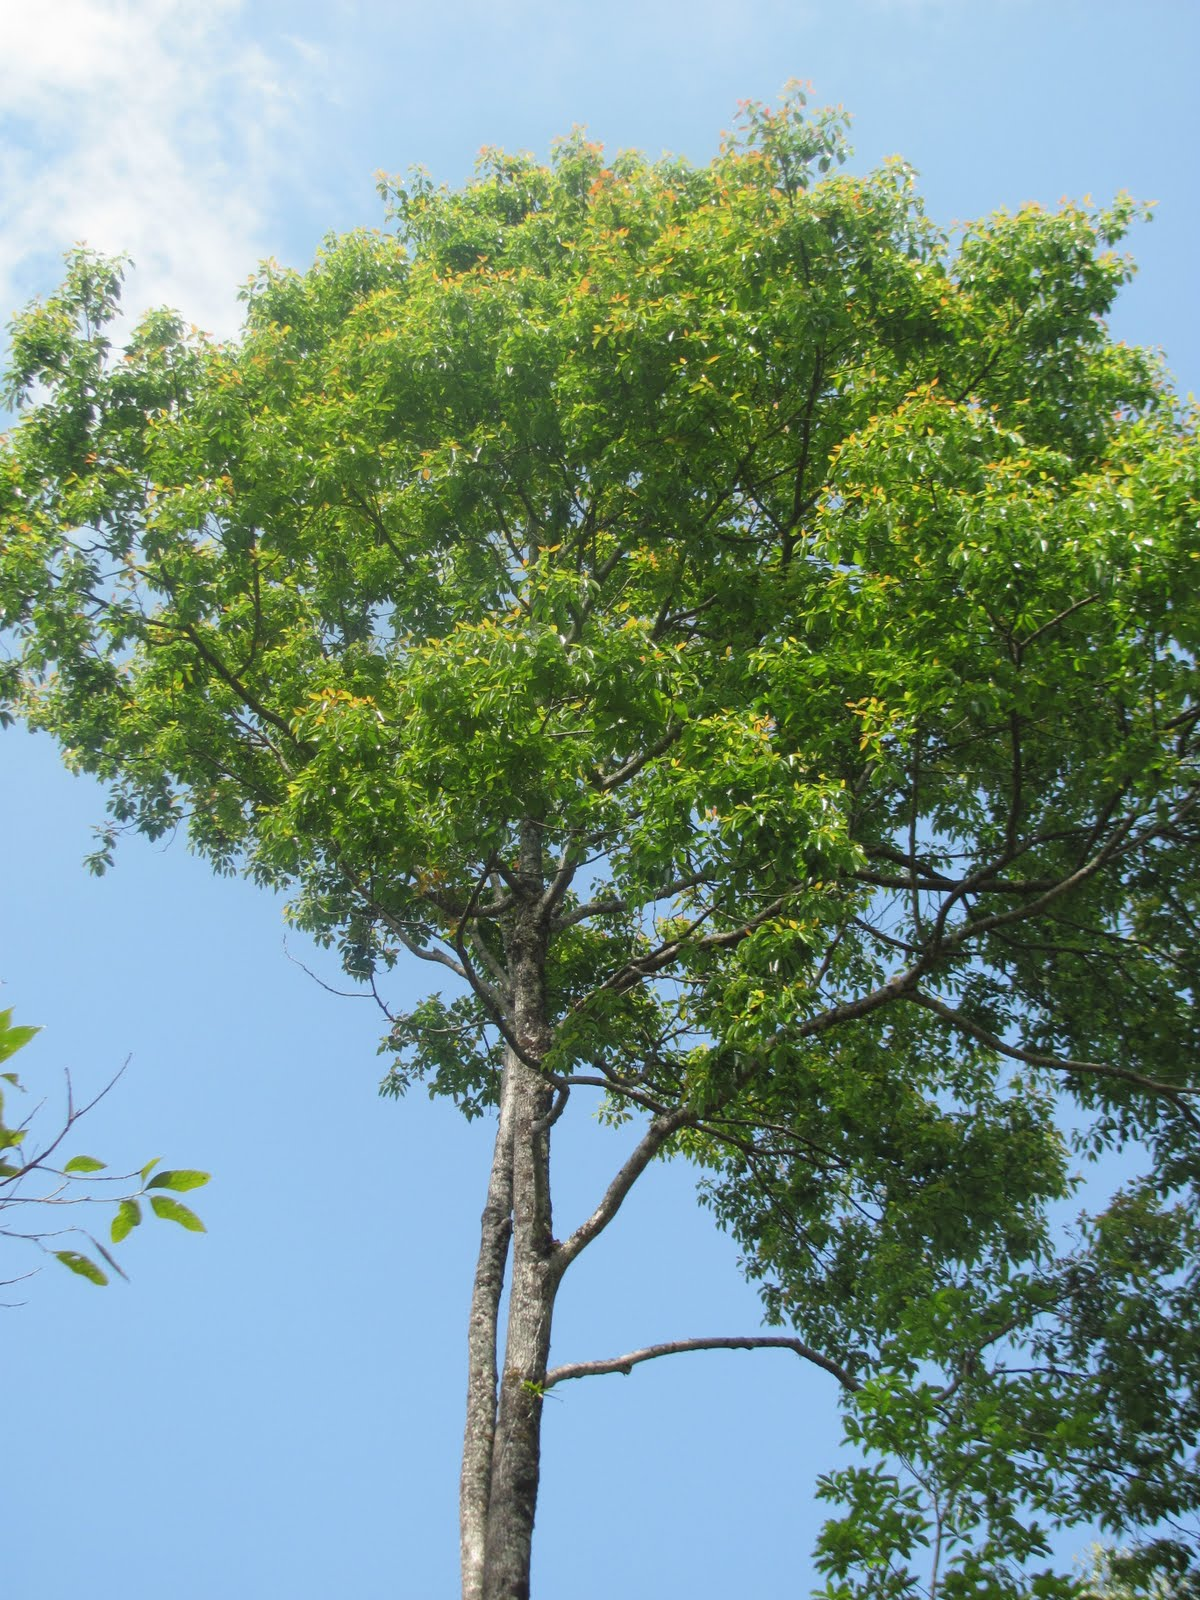 Village View: Local trees of Nagaland